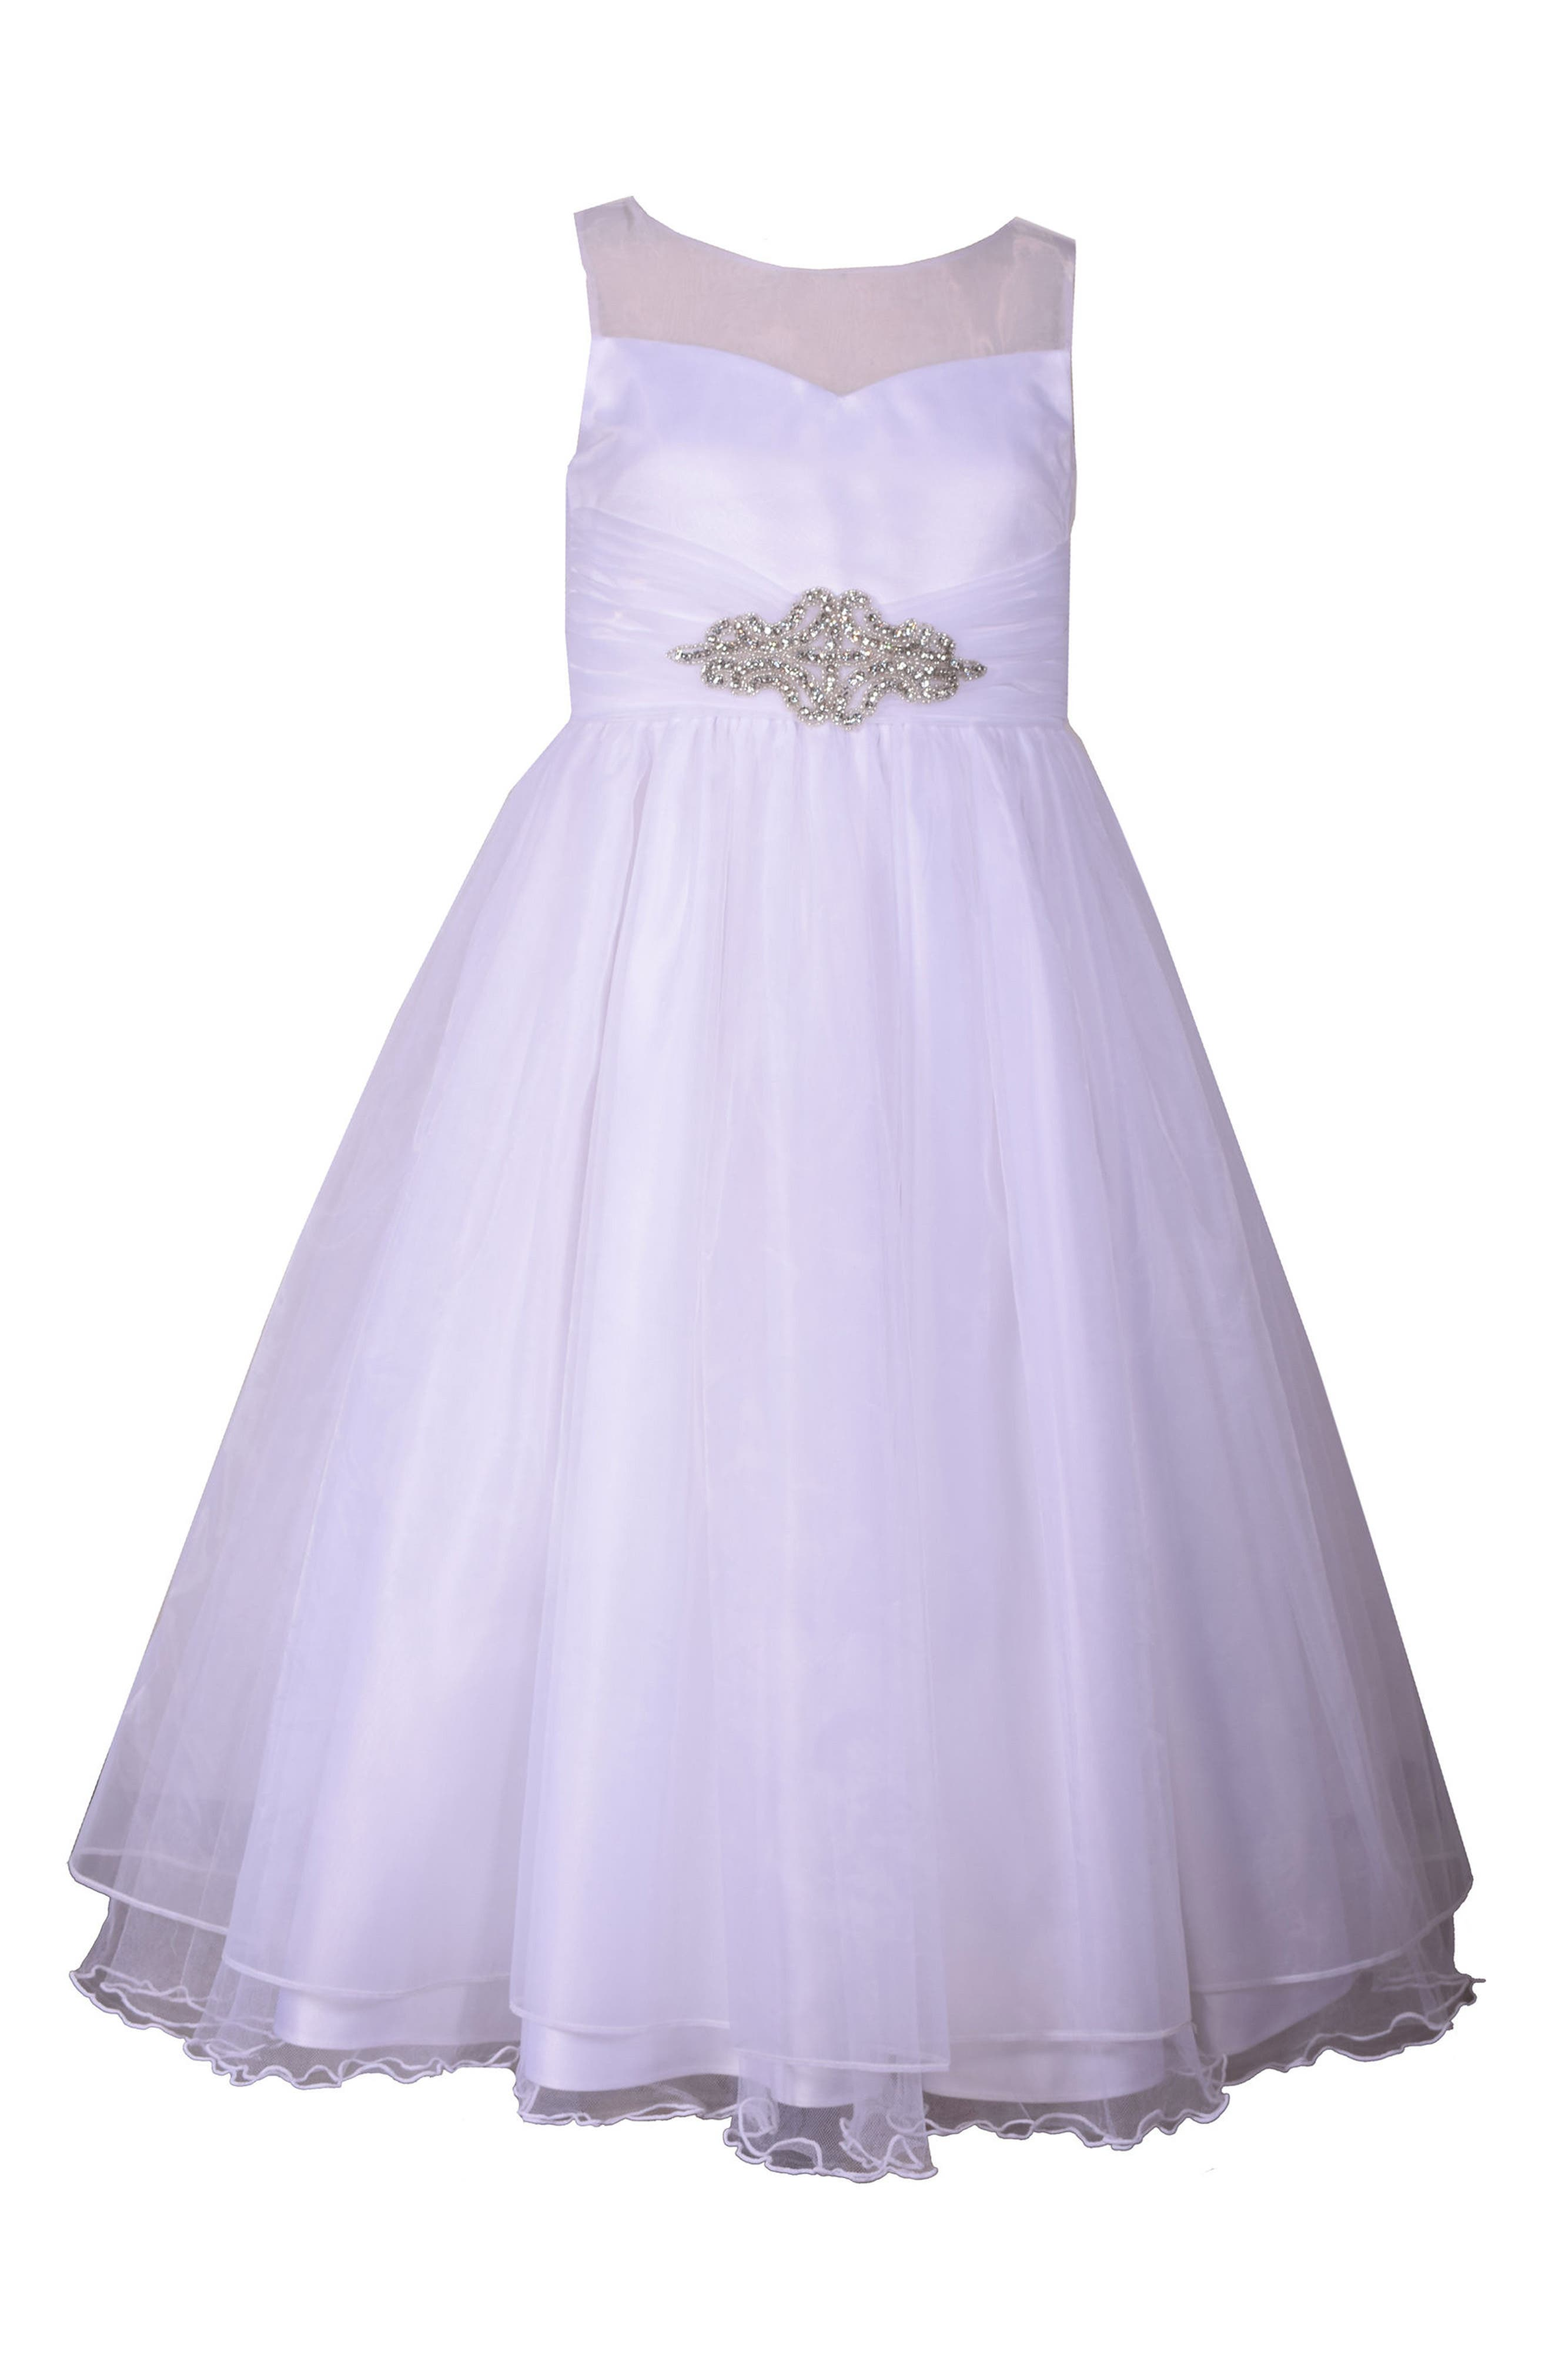 Embellished First Communion Dress,                             Main thumbnail 1, color,                             100